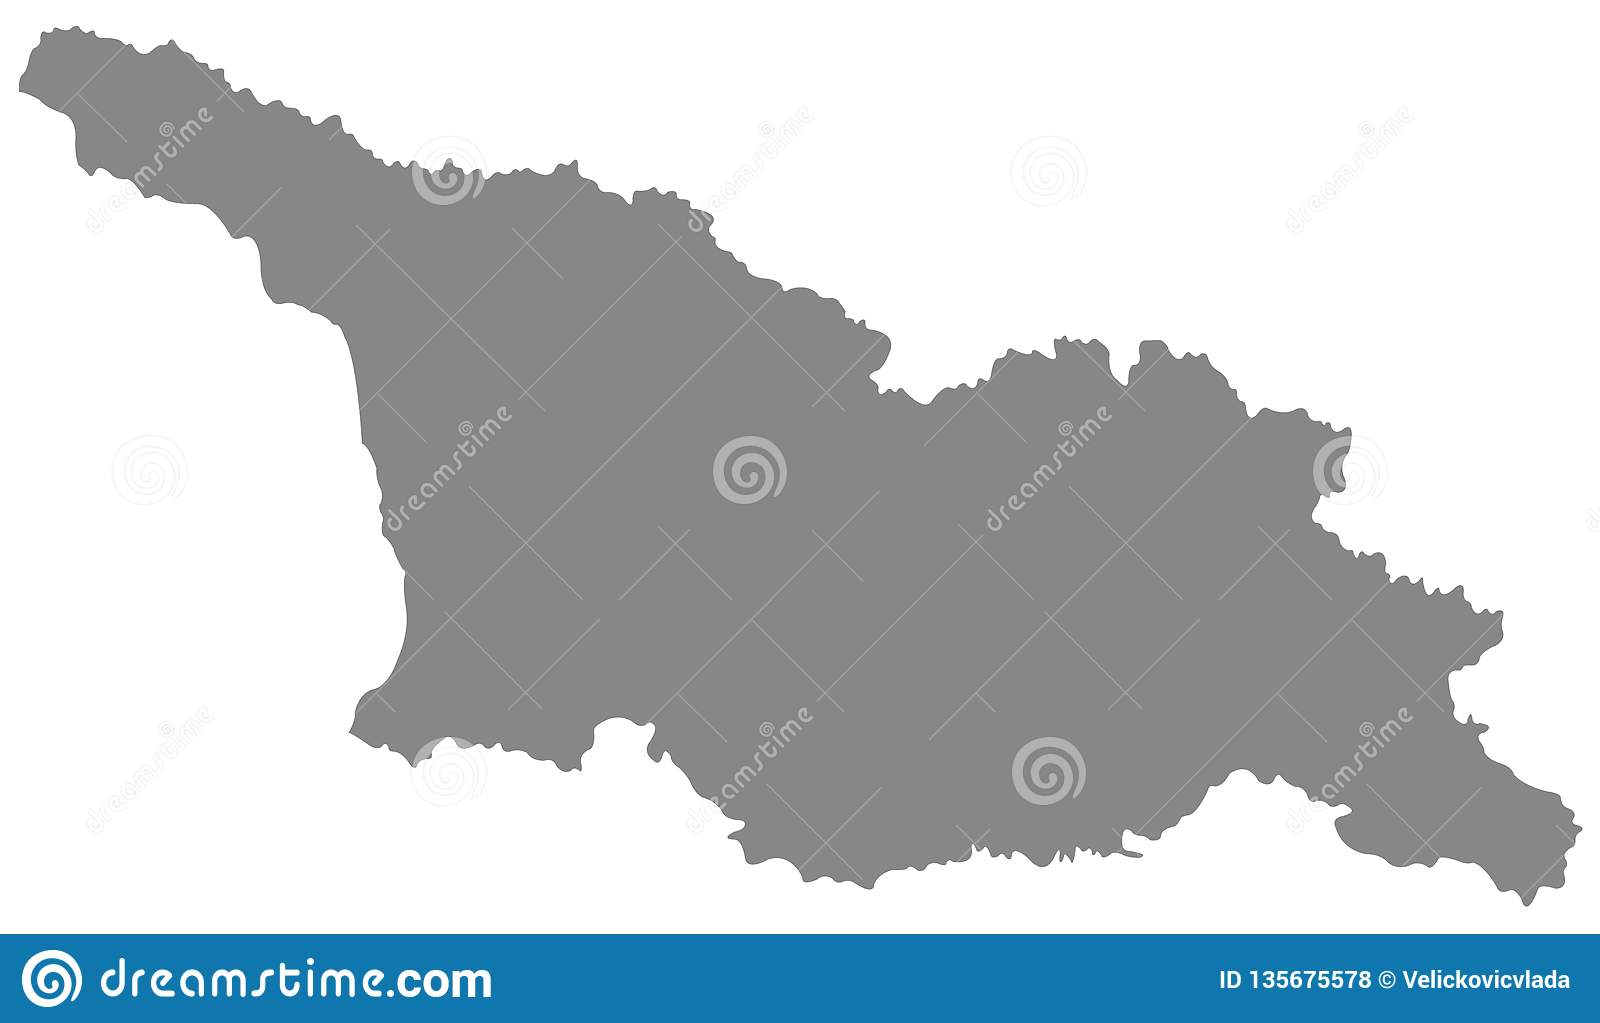 Georgia Country Map Is A Country In The Caucasus Region Of Eurasia